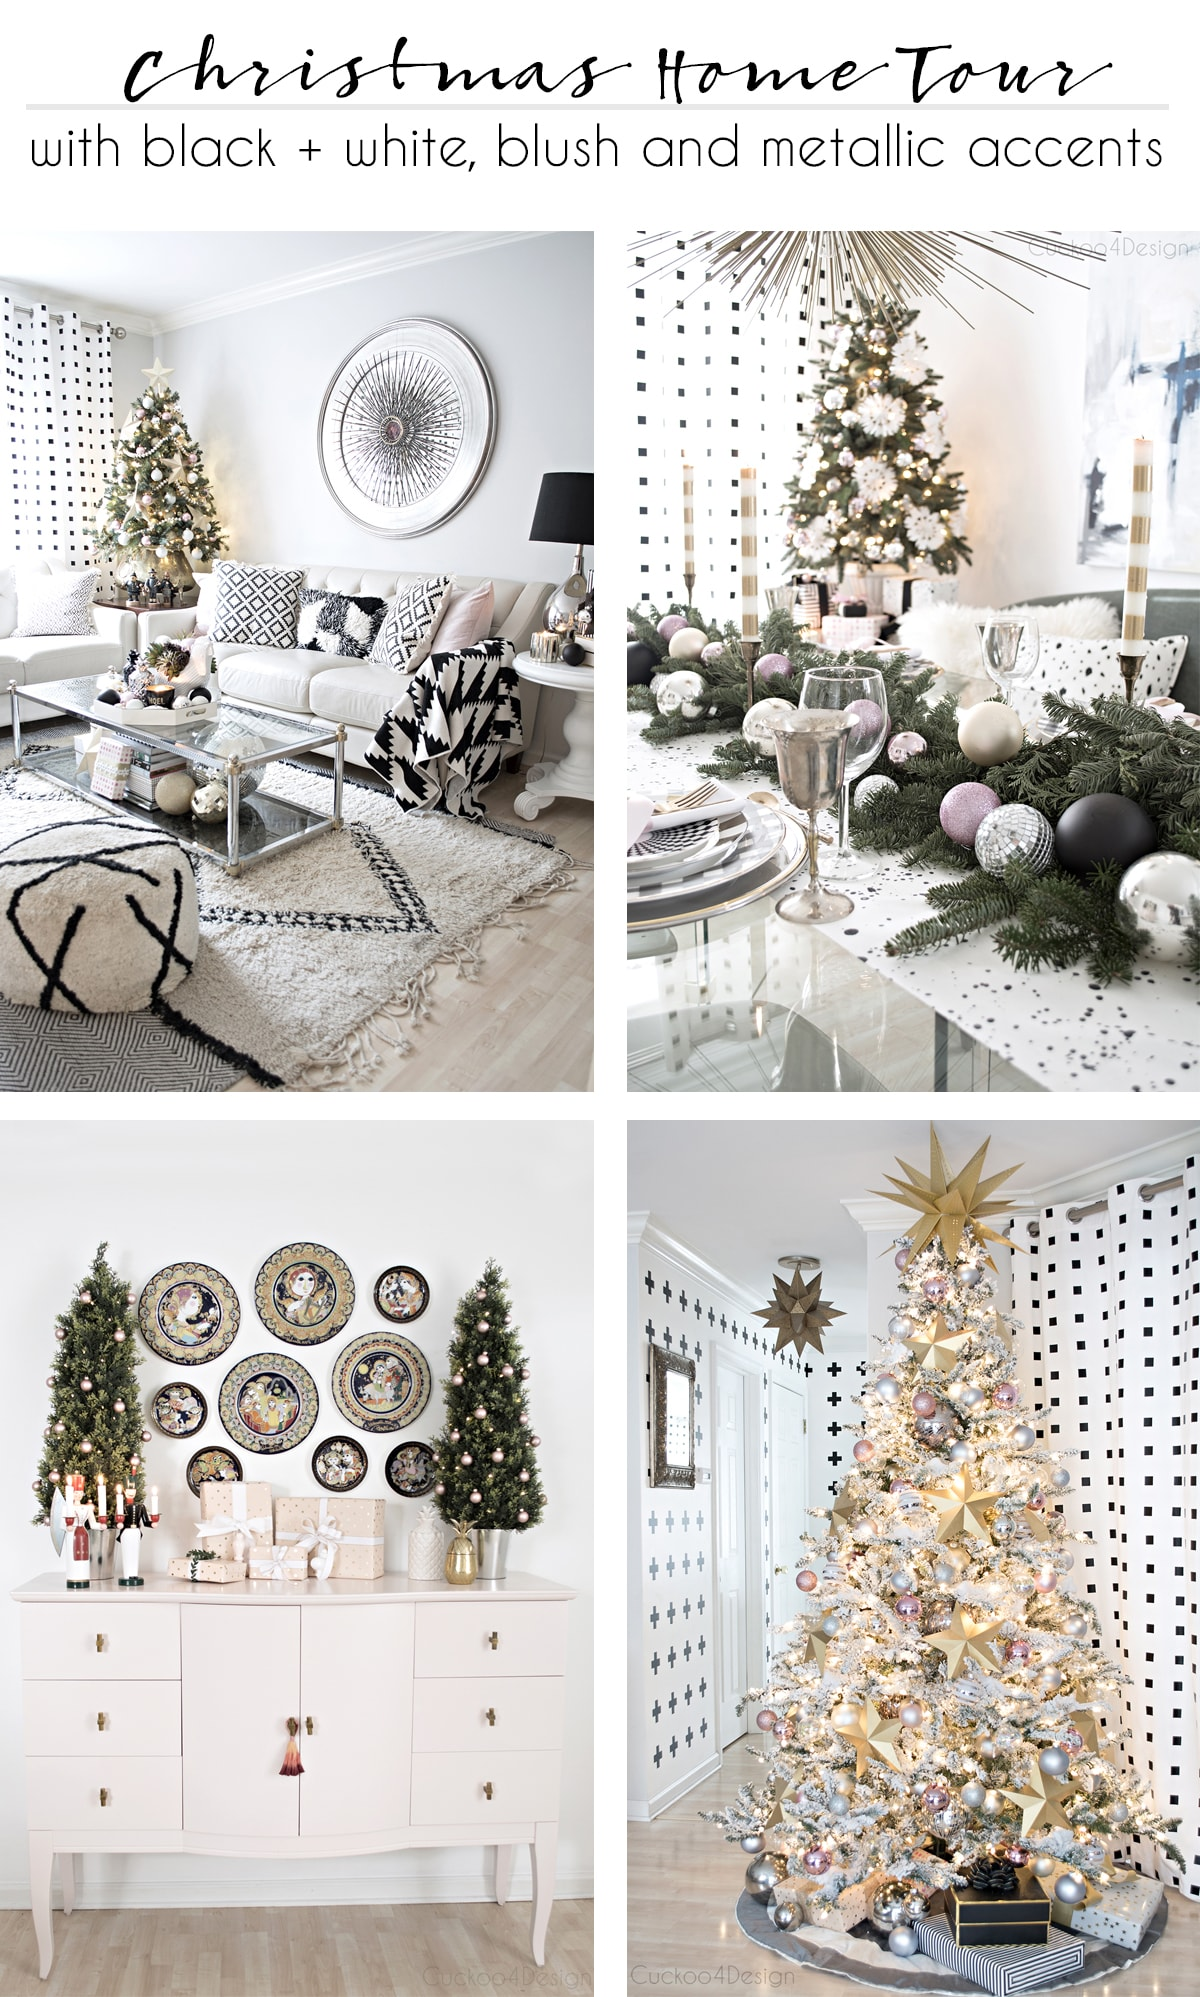 Better Homes and Gardens Christmas Ideas Home Tour in black and white with blush and metallic accents